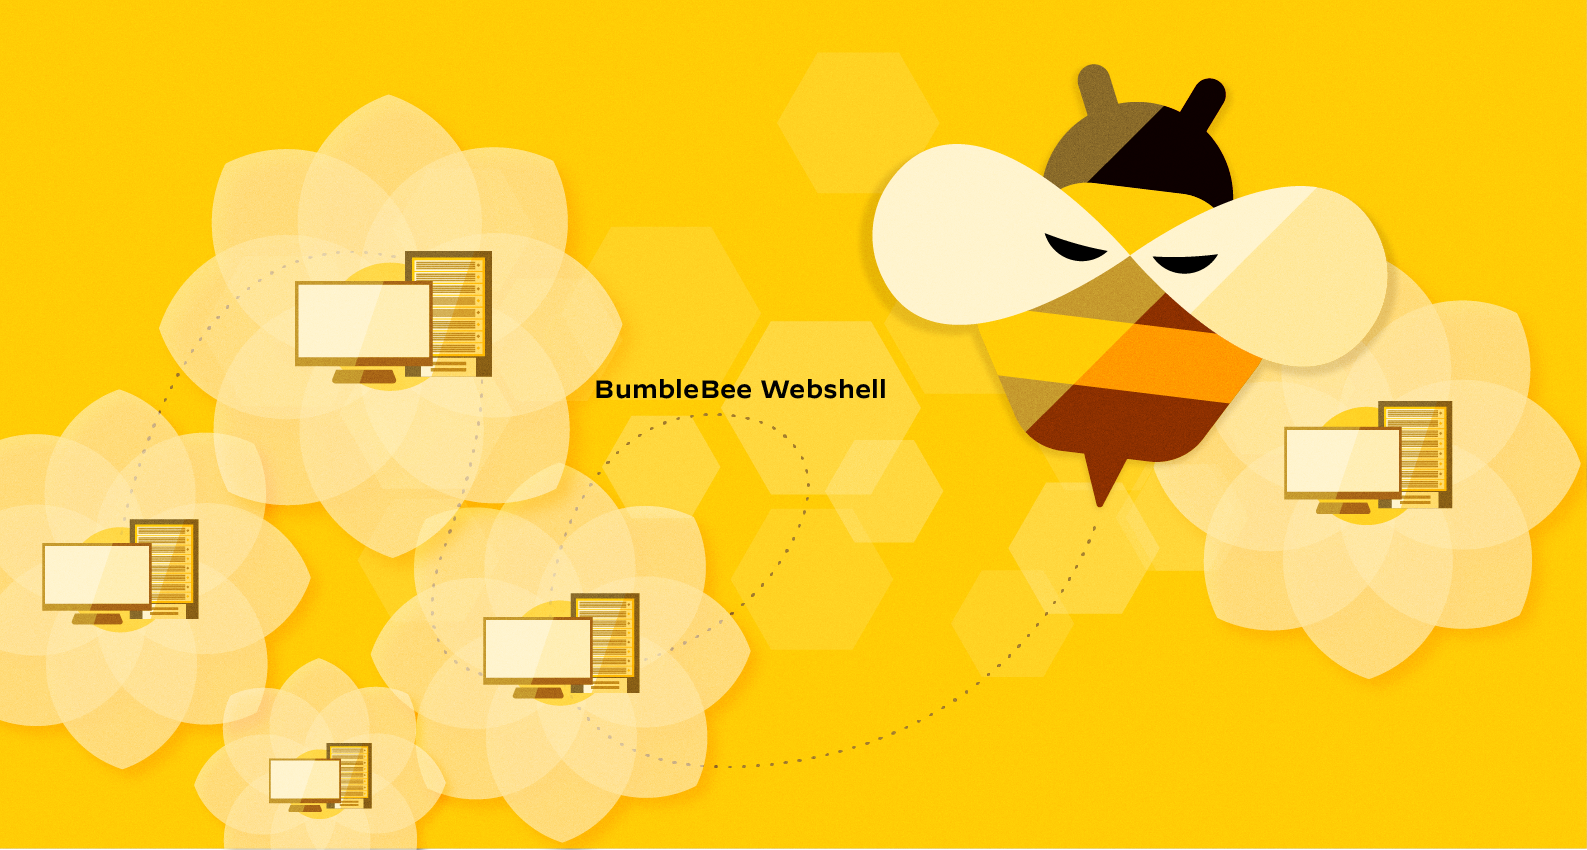 The BumbleBee webshell, conceptually illustrated here, was discovered as part of an investigation of the continued xHunt campaign.